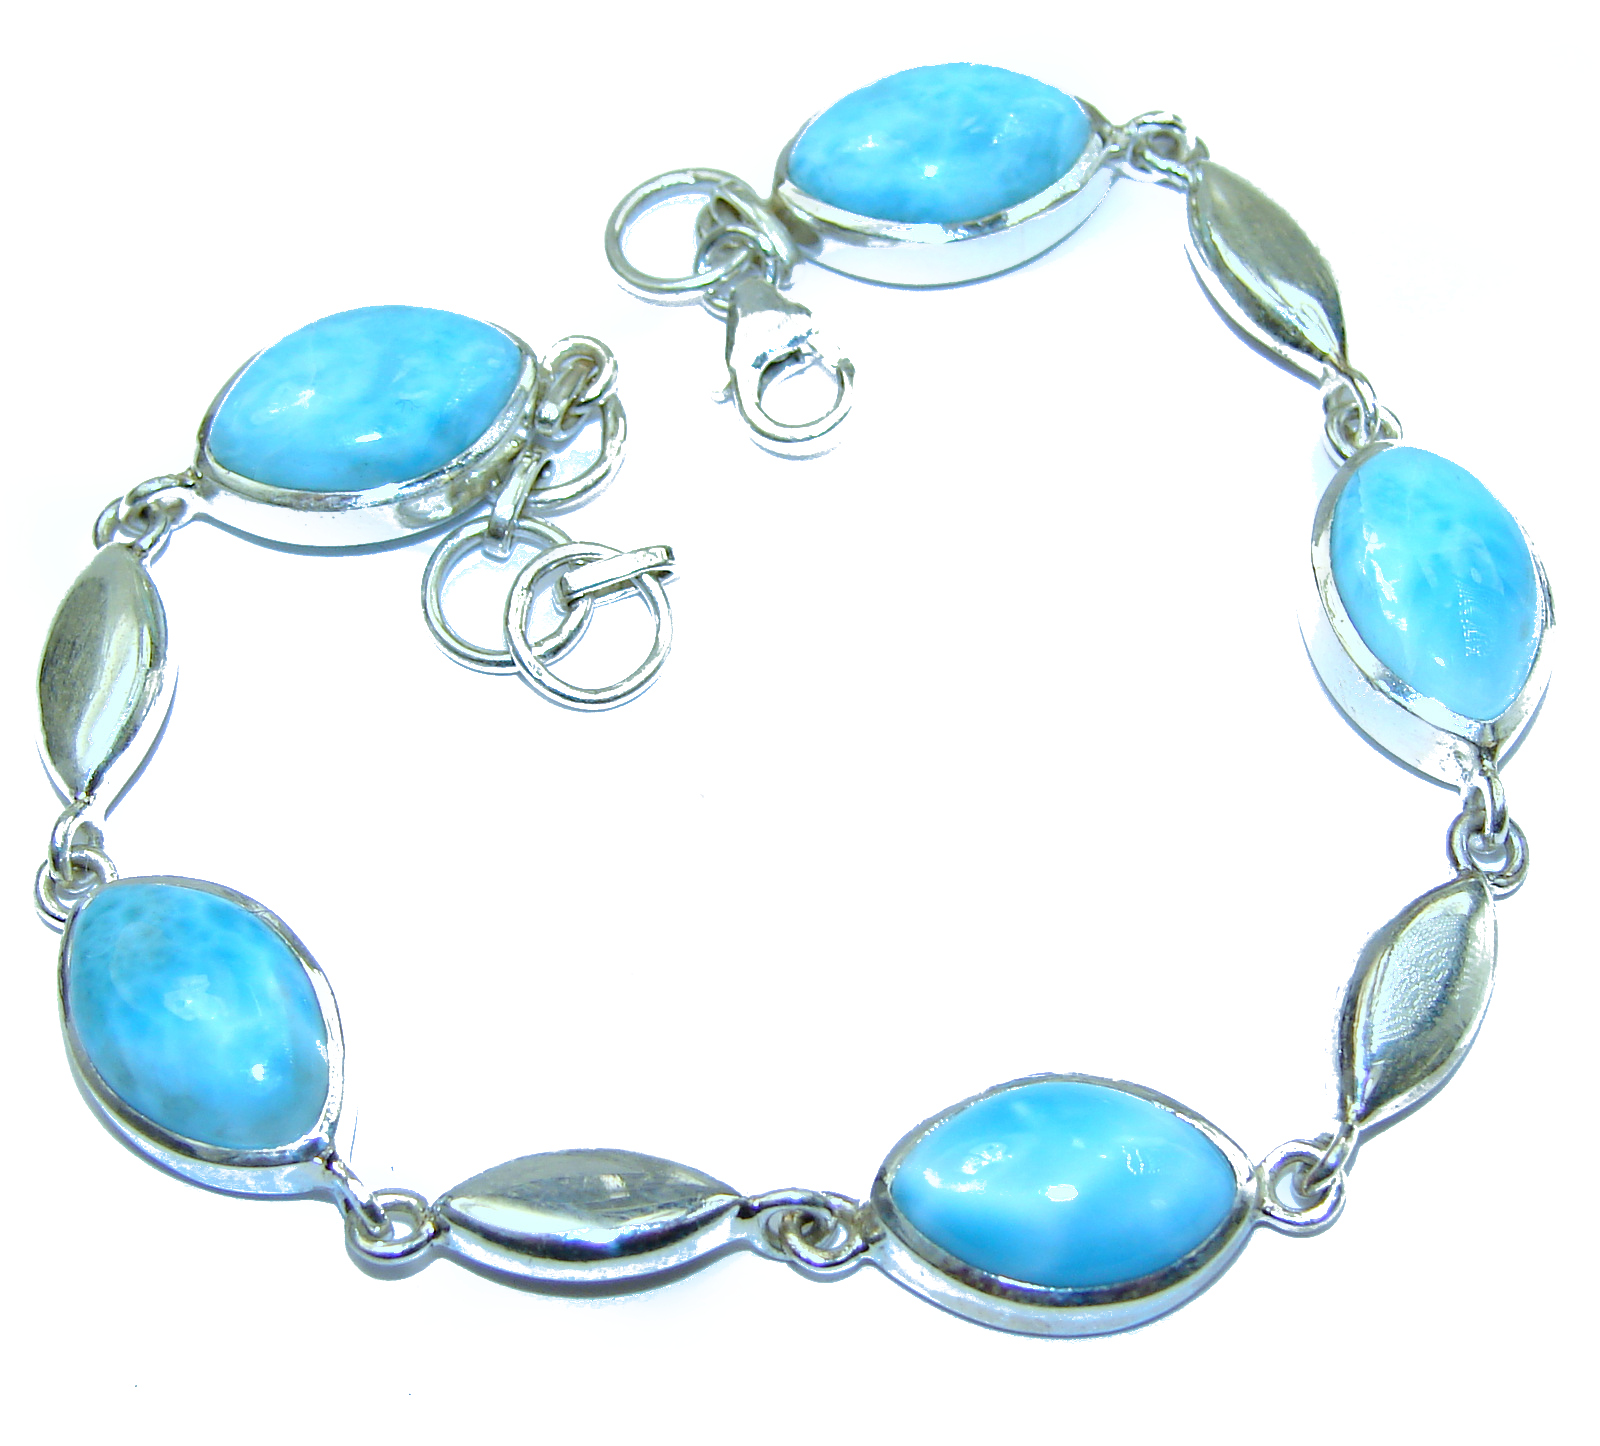 Classy Design authentic Larimar .925 Sterling Silver handcrafted Bracelet